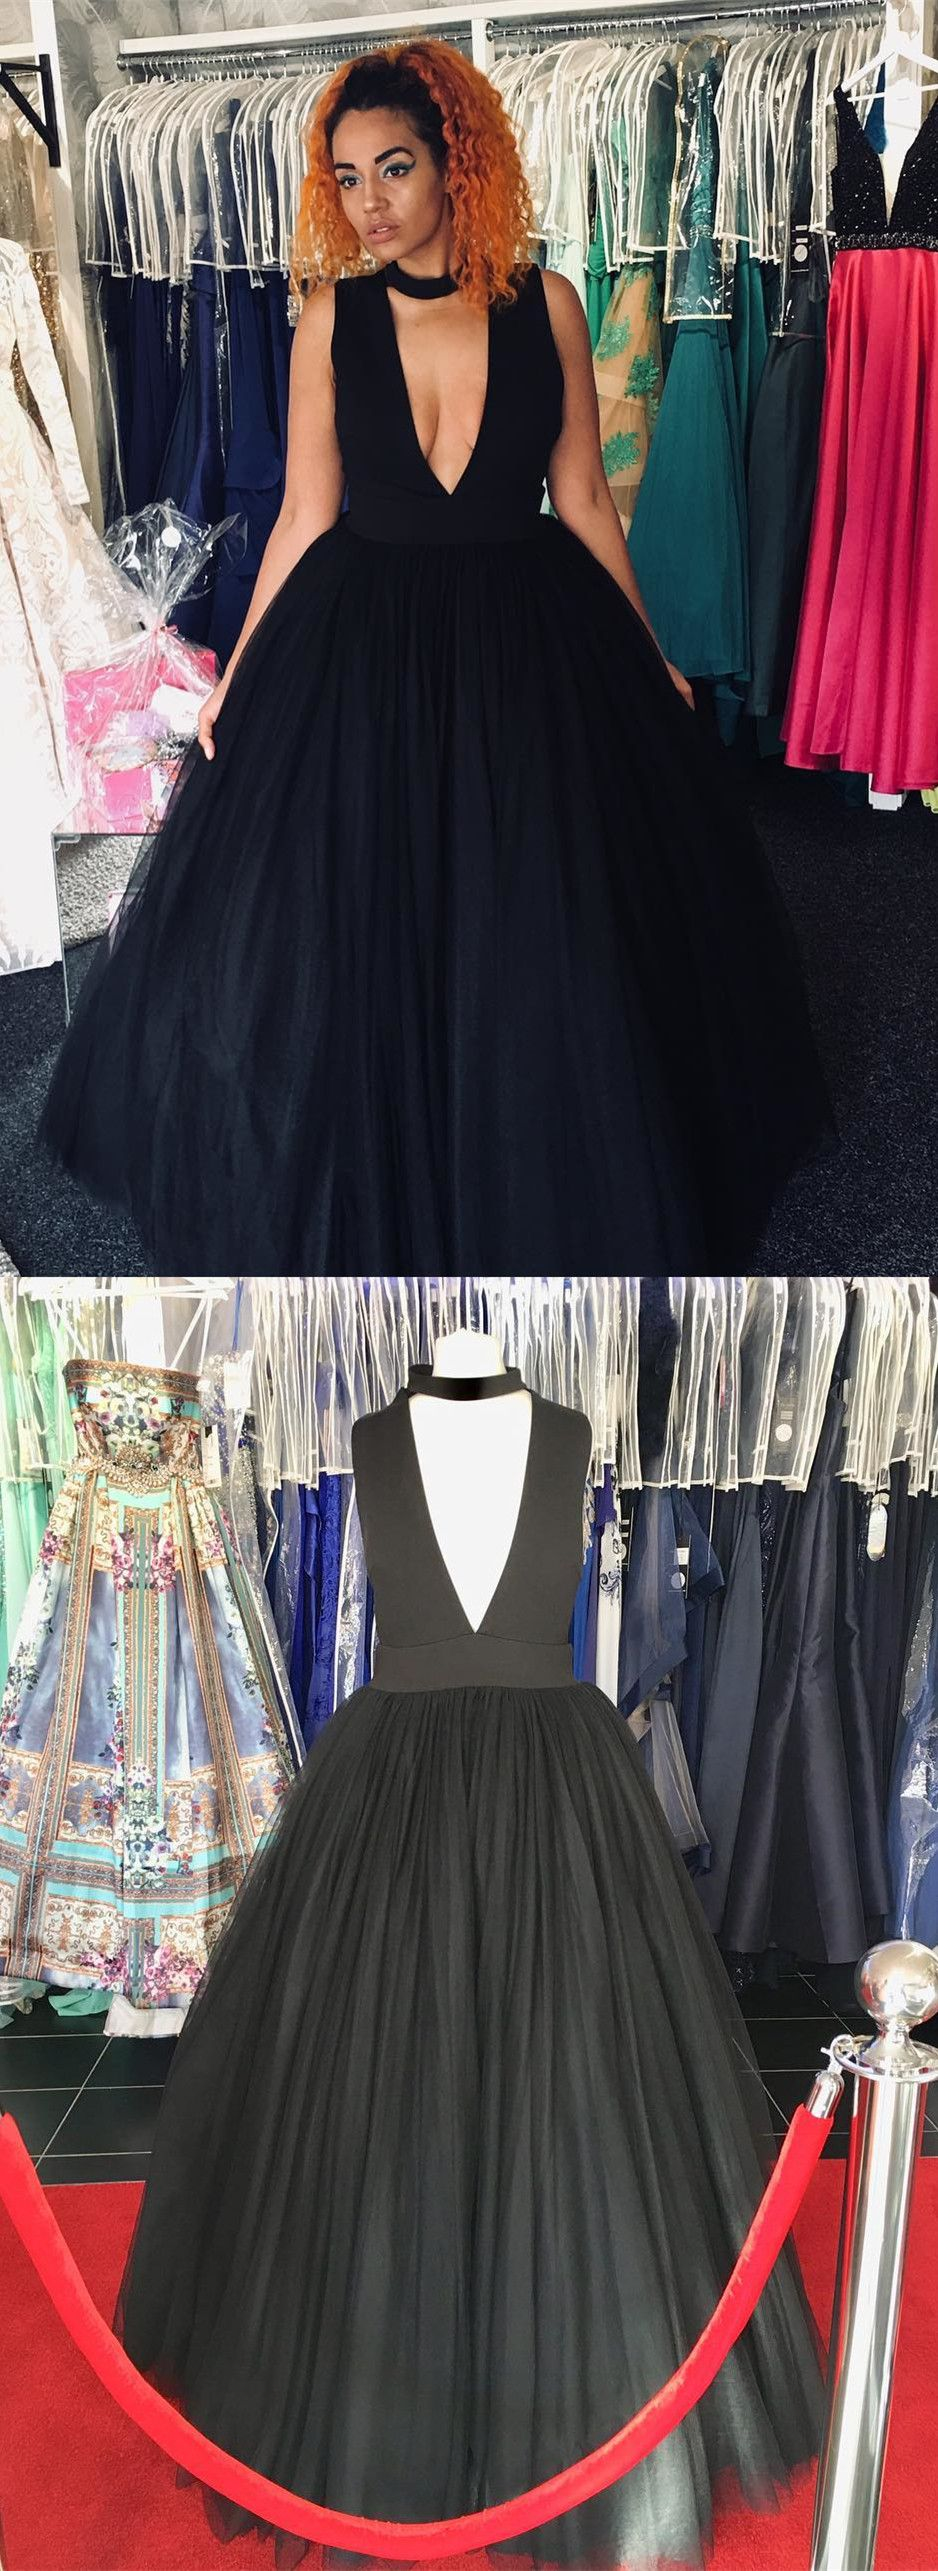 Gorgeous deep v neck black long ball gown in prom dresses